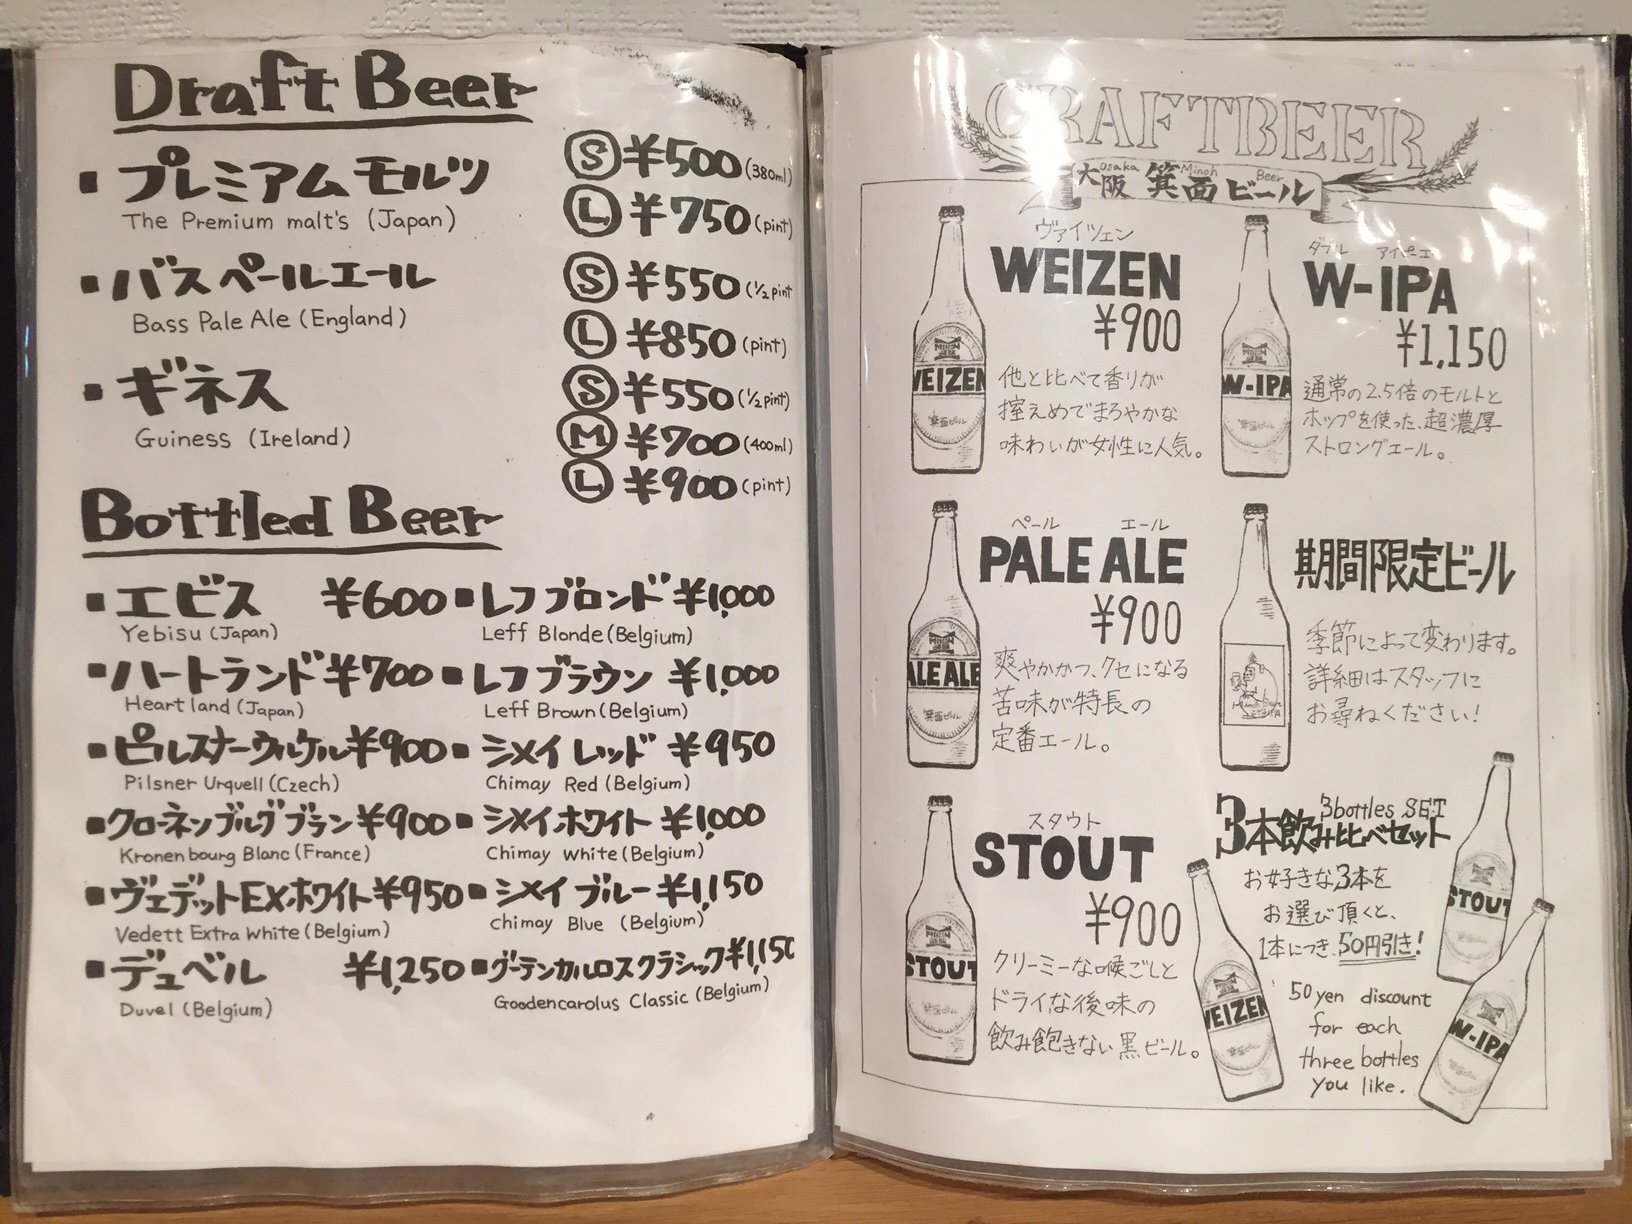 Draft Beer、Bottled Beer